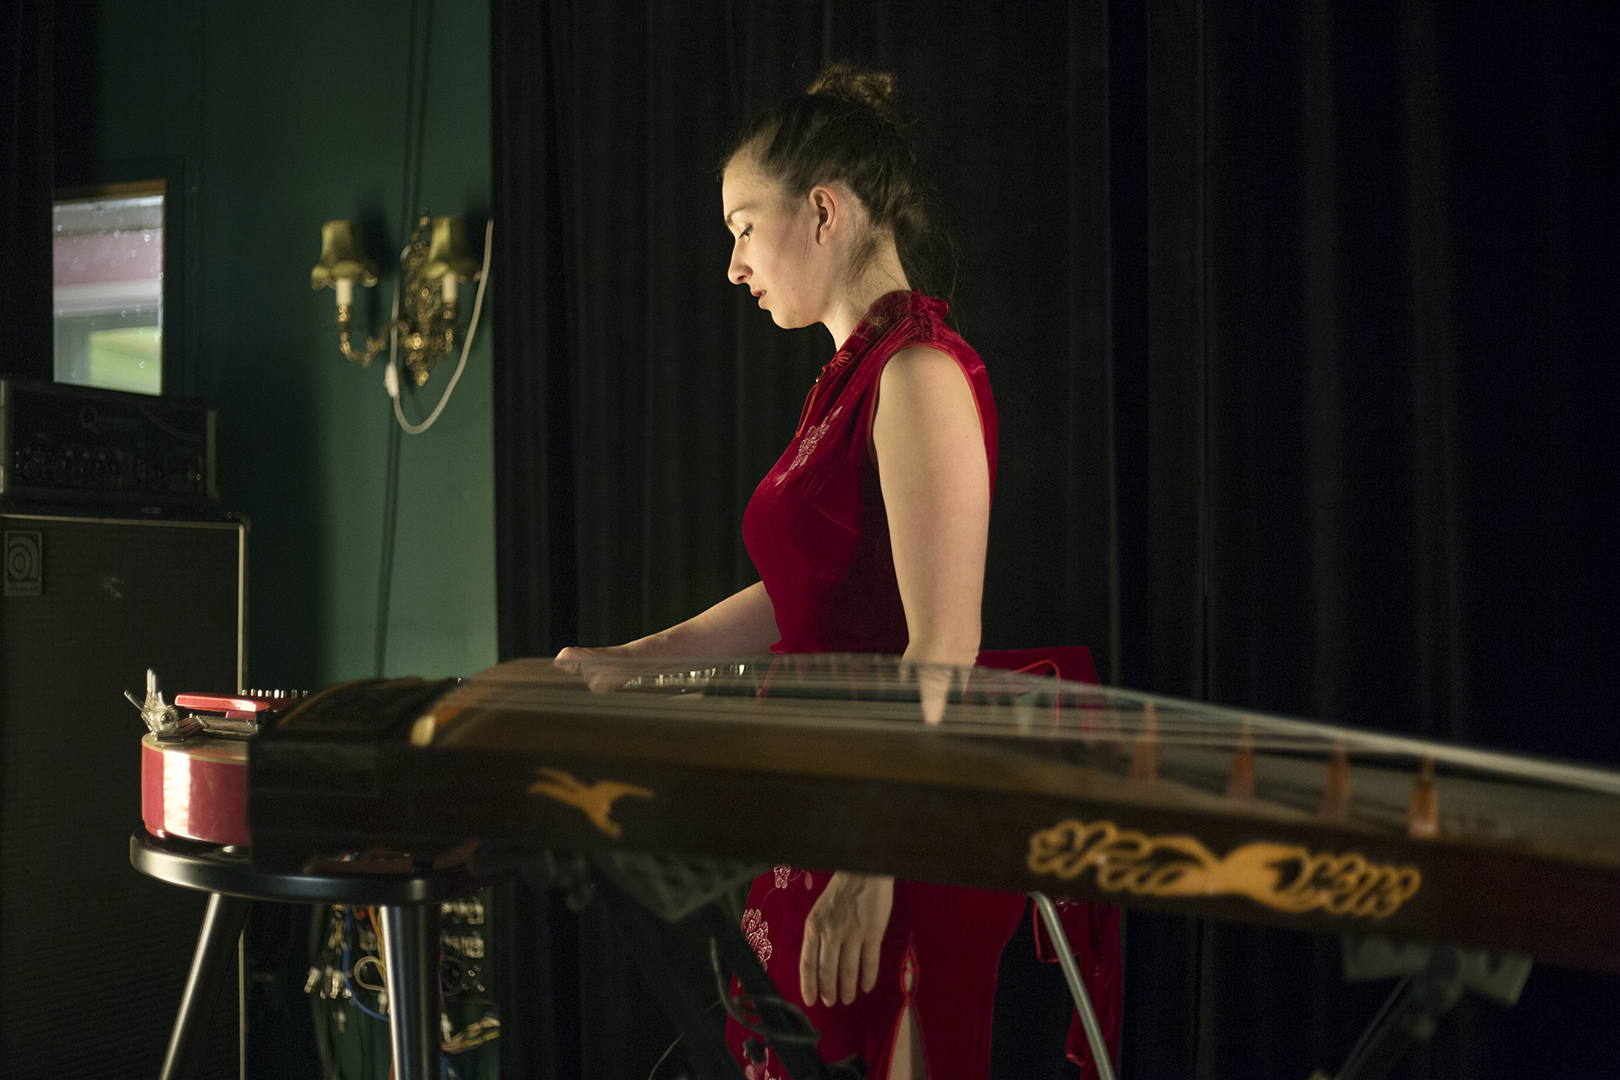 Instruments and Barbora red dress